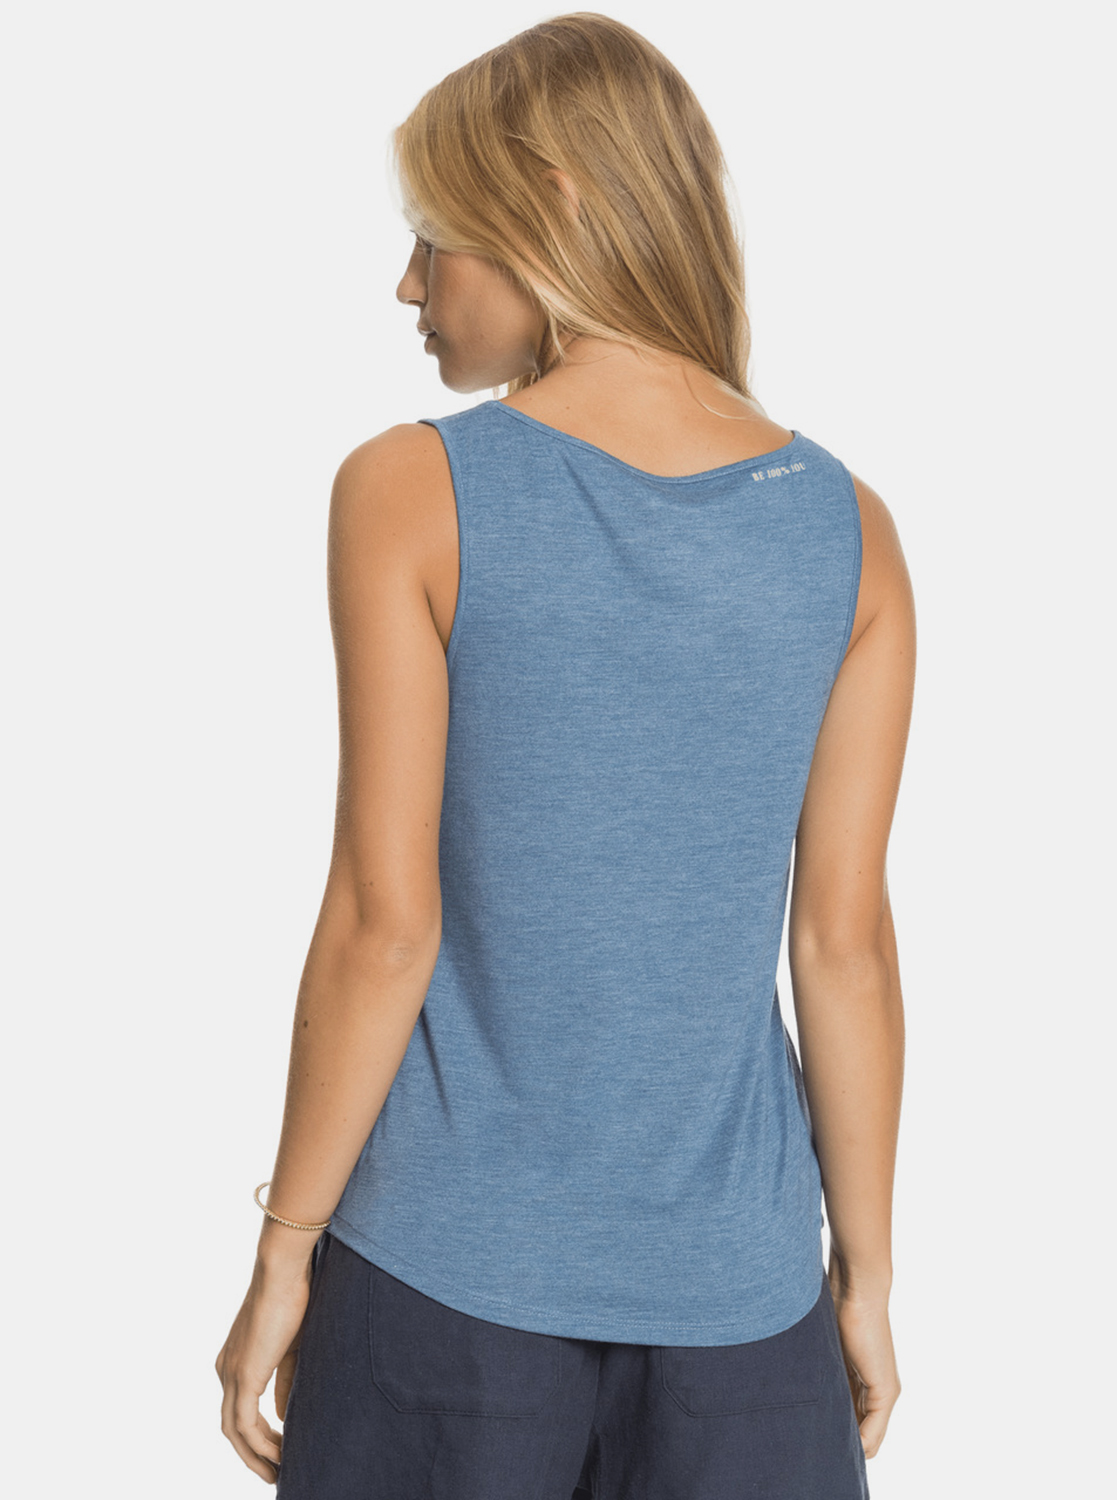 Roxy blue top with print